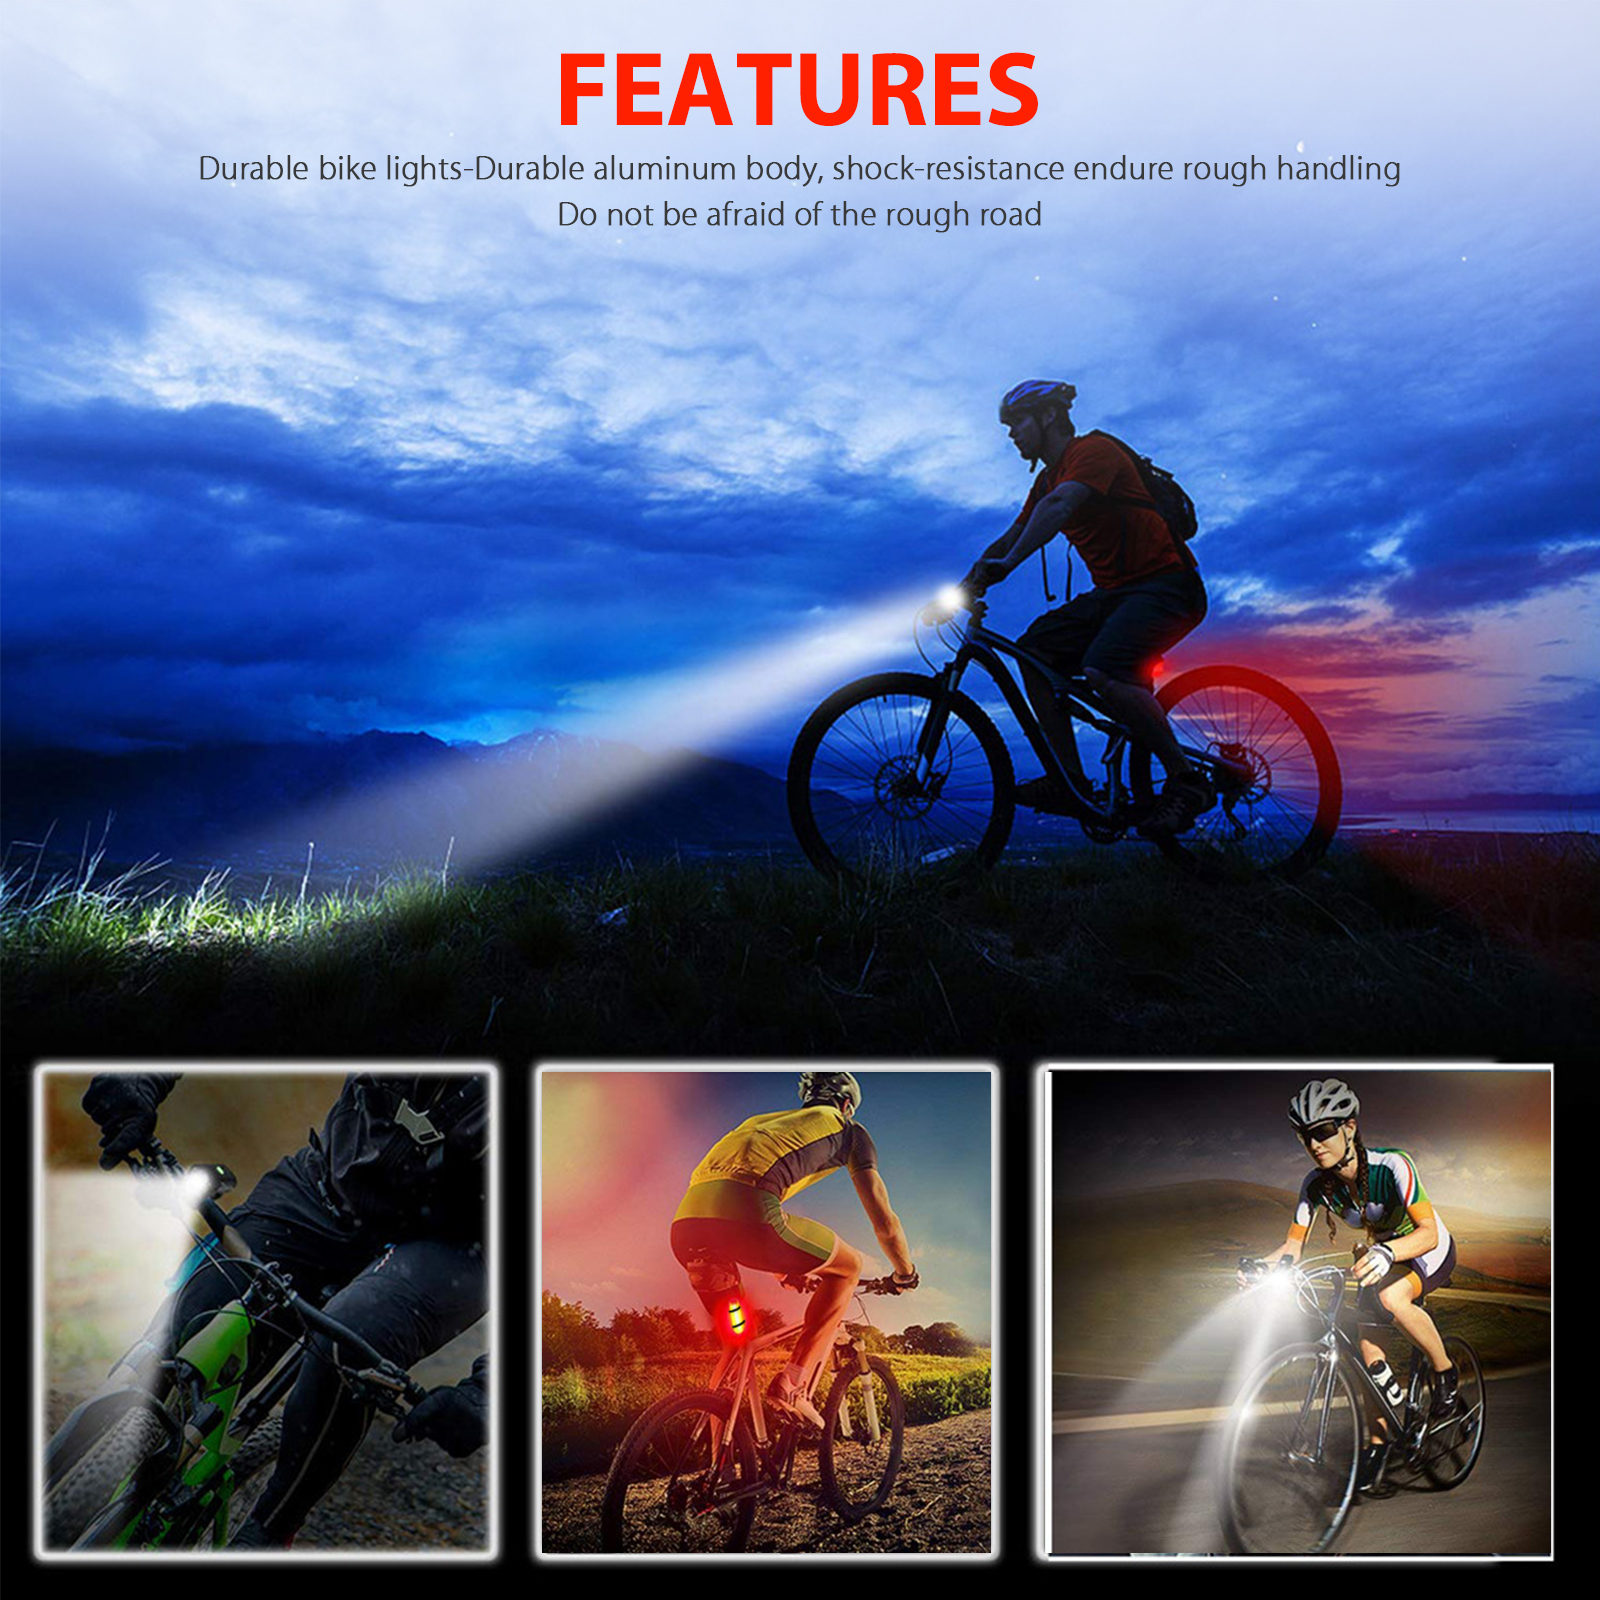 thumbnail 9 - LED-USB-Rechargeable-Bycicle-Light-Headlamp-Headlight-Bike-Front-Rear-Lamp-3Mode